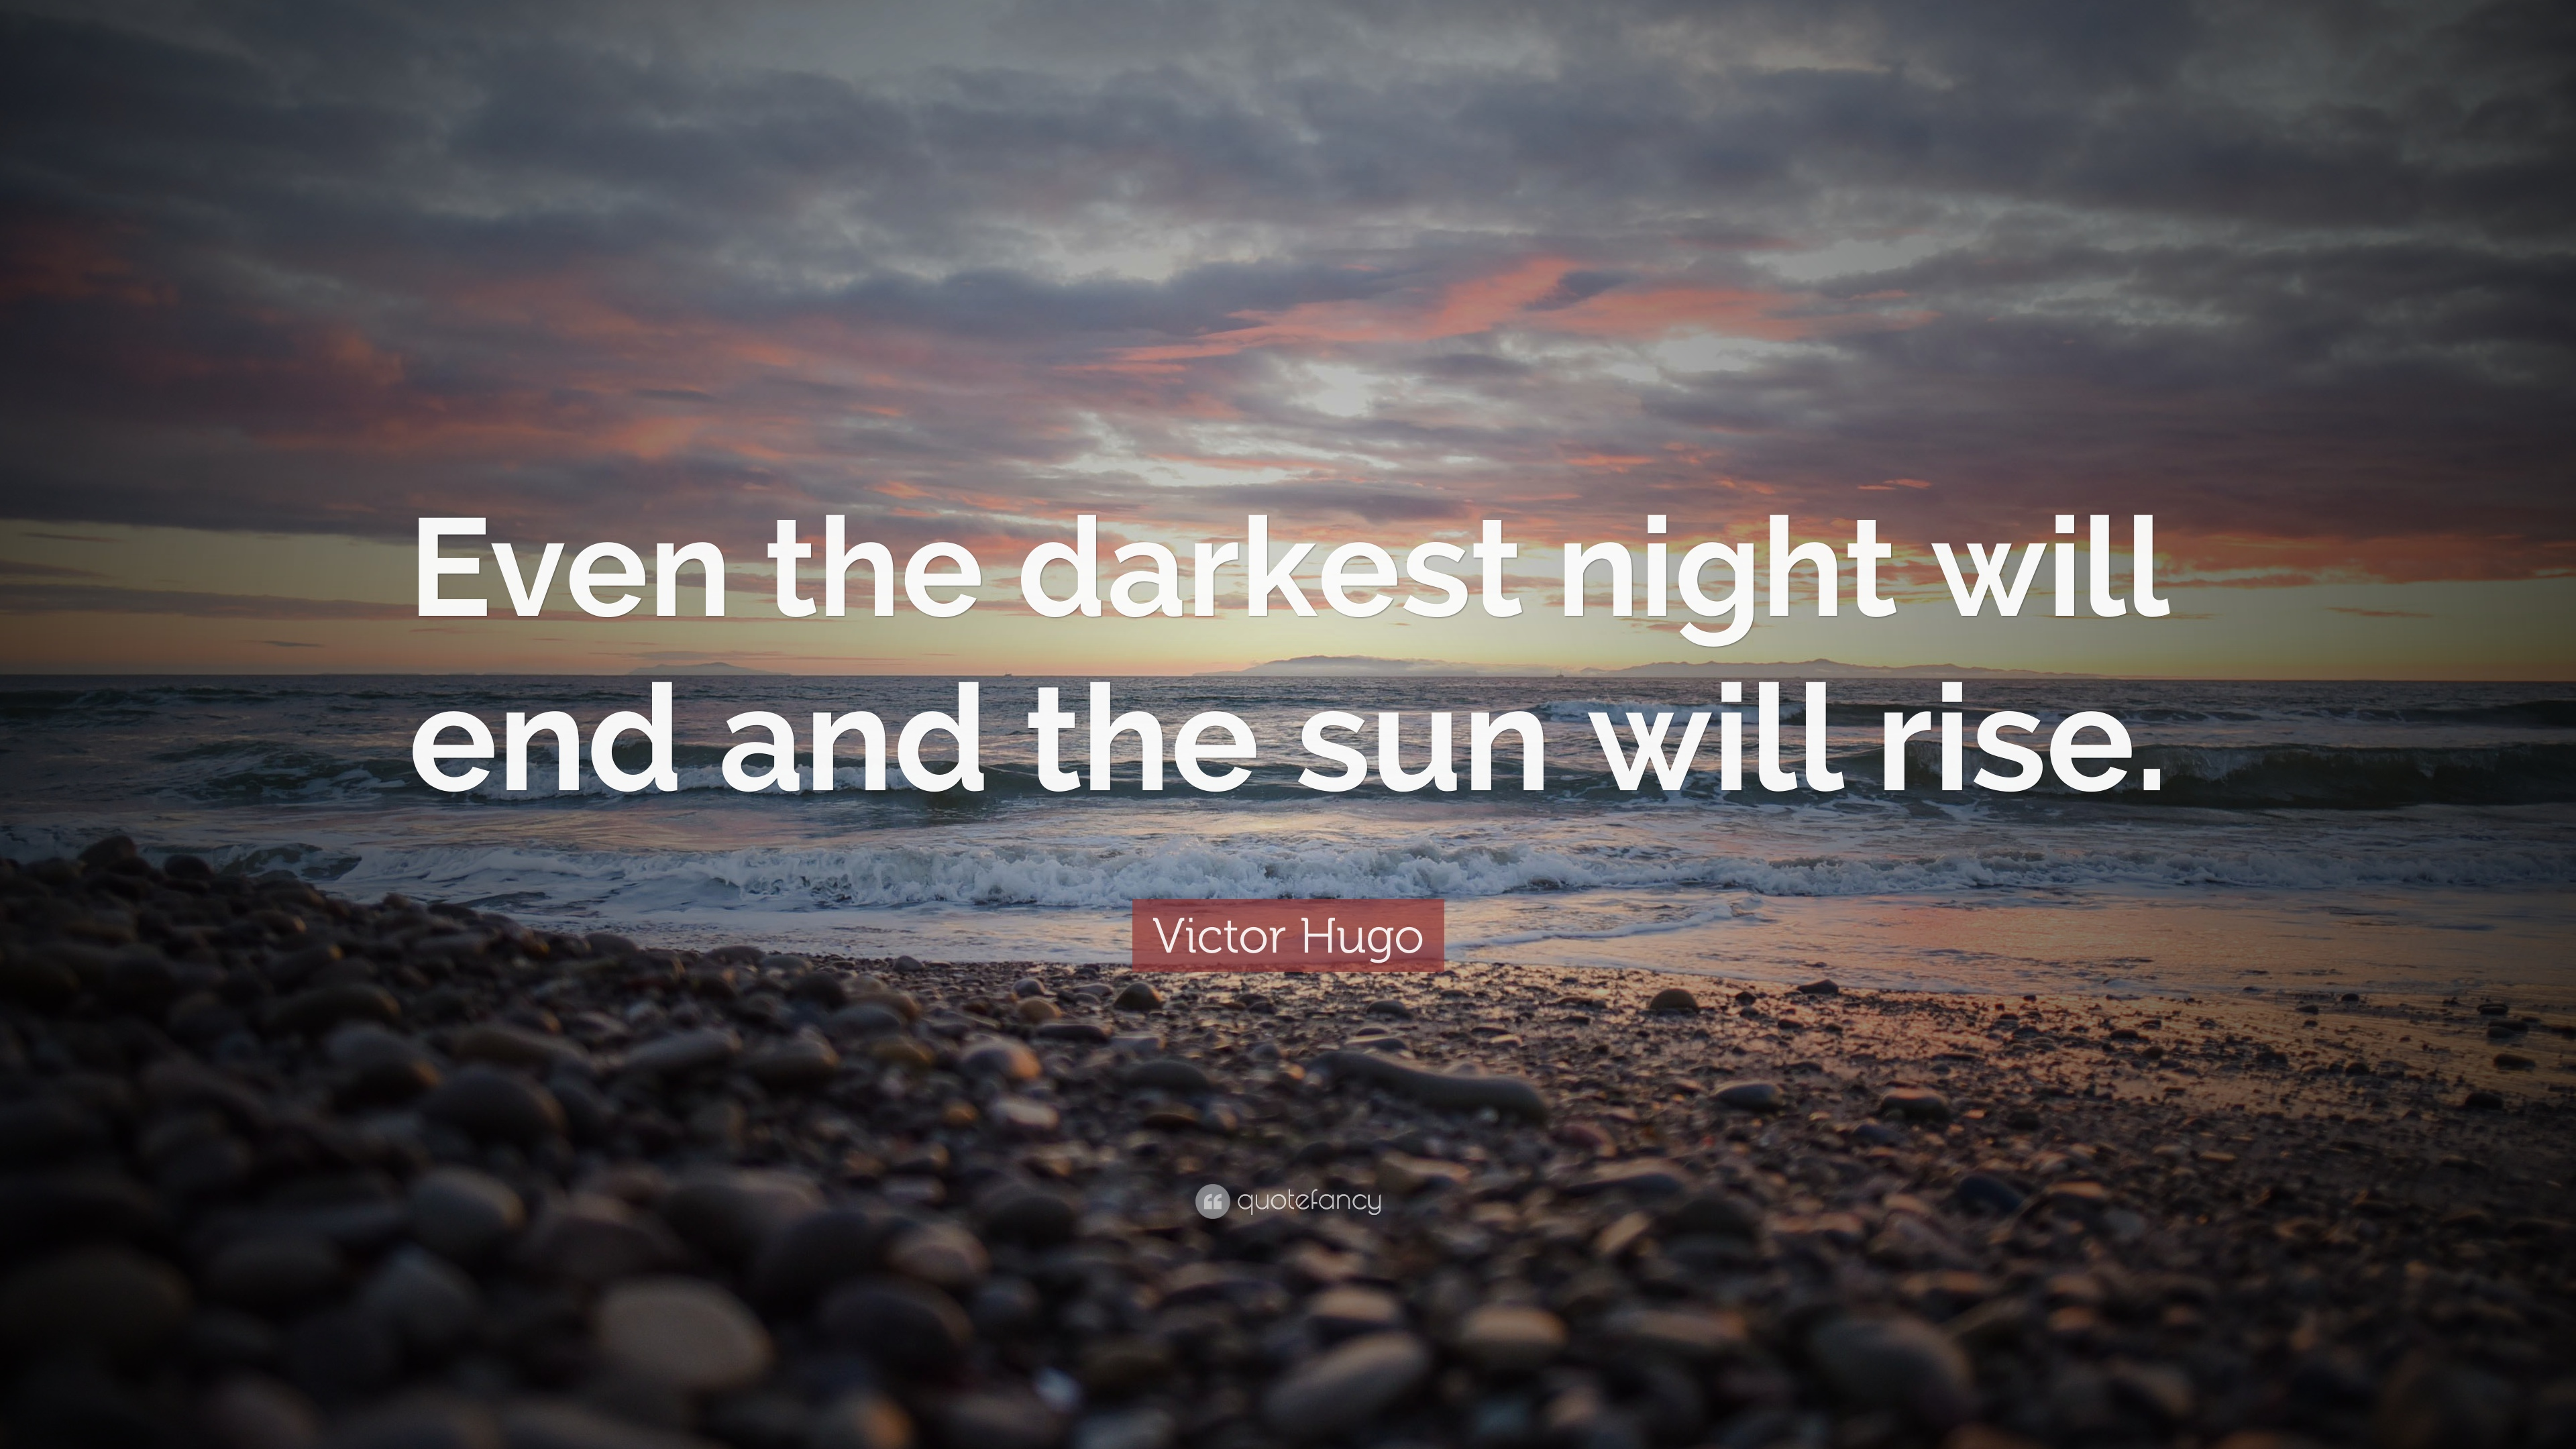 Poetry Love Quotes Wallpaper Victor Hugo Quote Even The Darkest Night Will End And